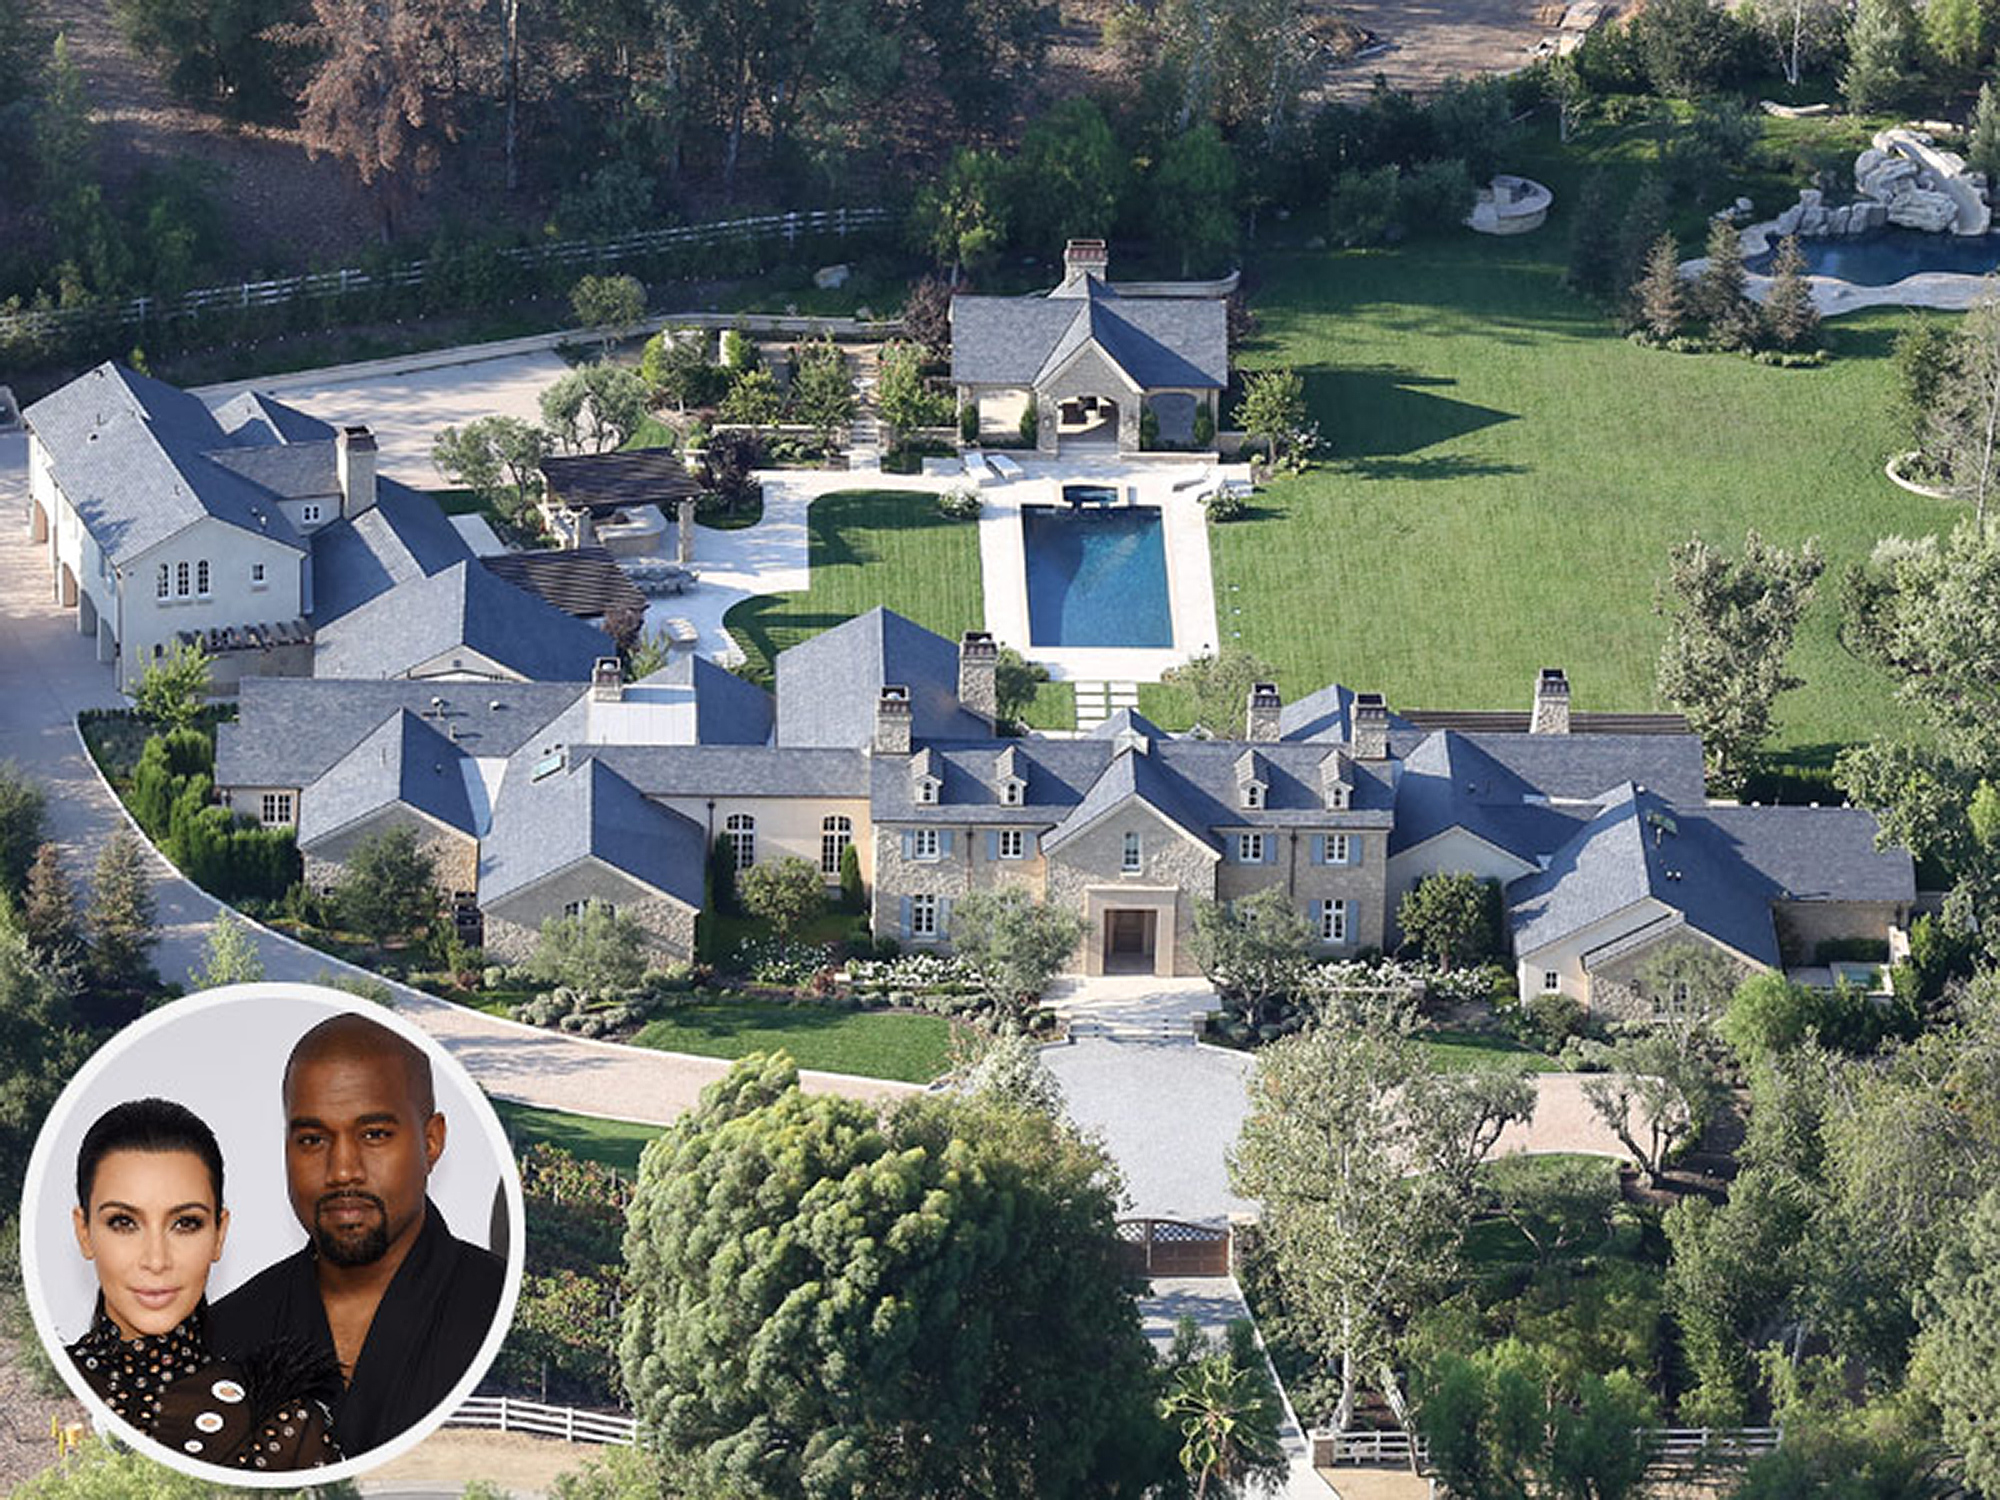 Kim and Kanye West's Over-the-Top Estate